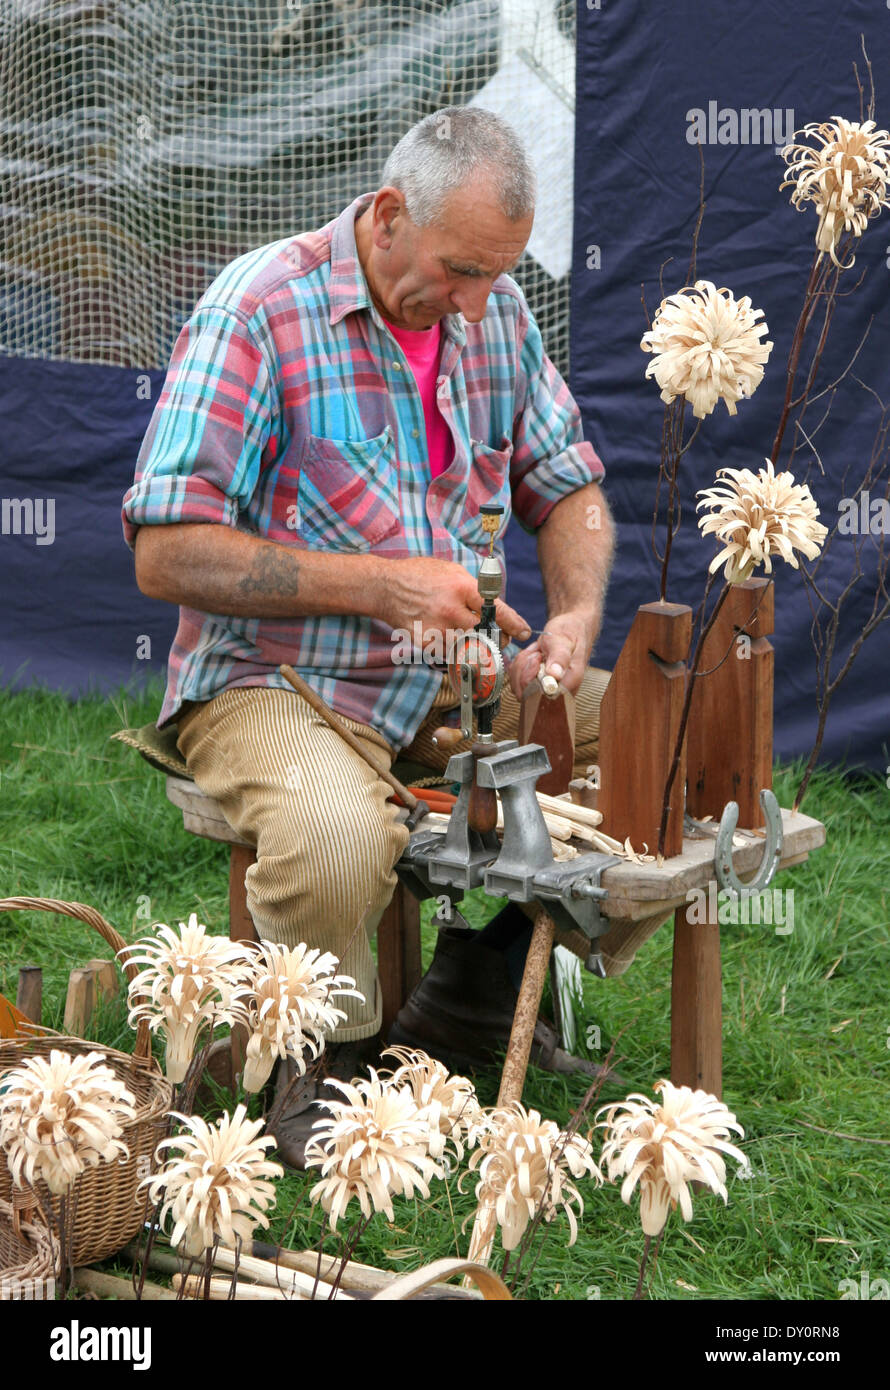 Woodworker /Craftworker Carving Flowers at Chatsworth Country Fair Derbyshire.England Stock Photo